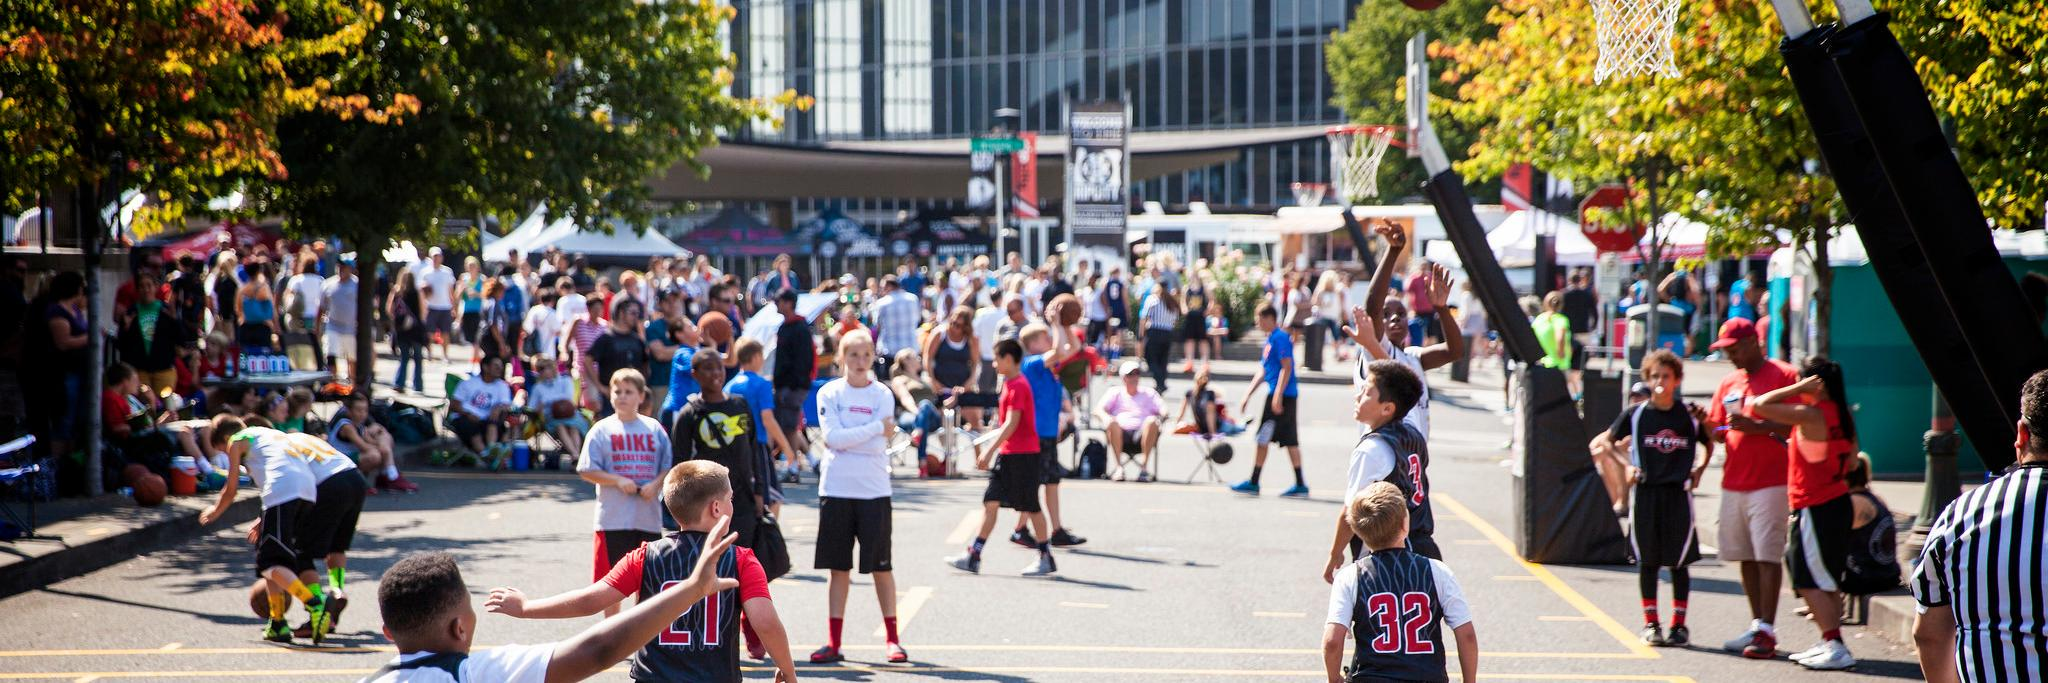 The fifth annual Rip City 3-on-3 basketball tournament returns to the Rose Quarter July 28-29. Registration is now… https://t.co/DwcGRitOqn